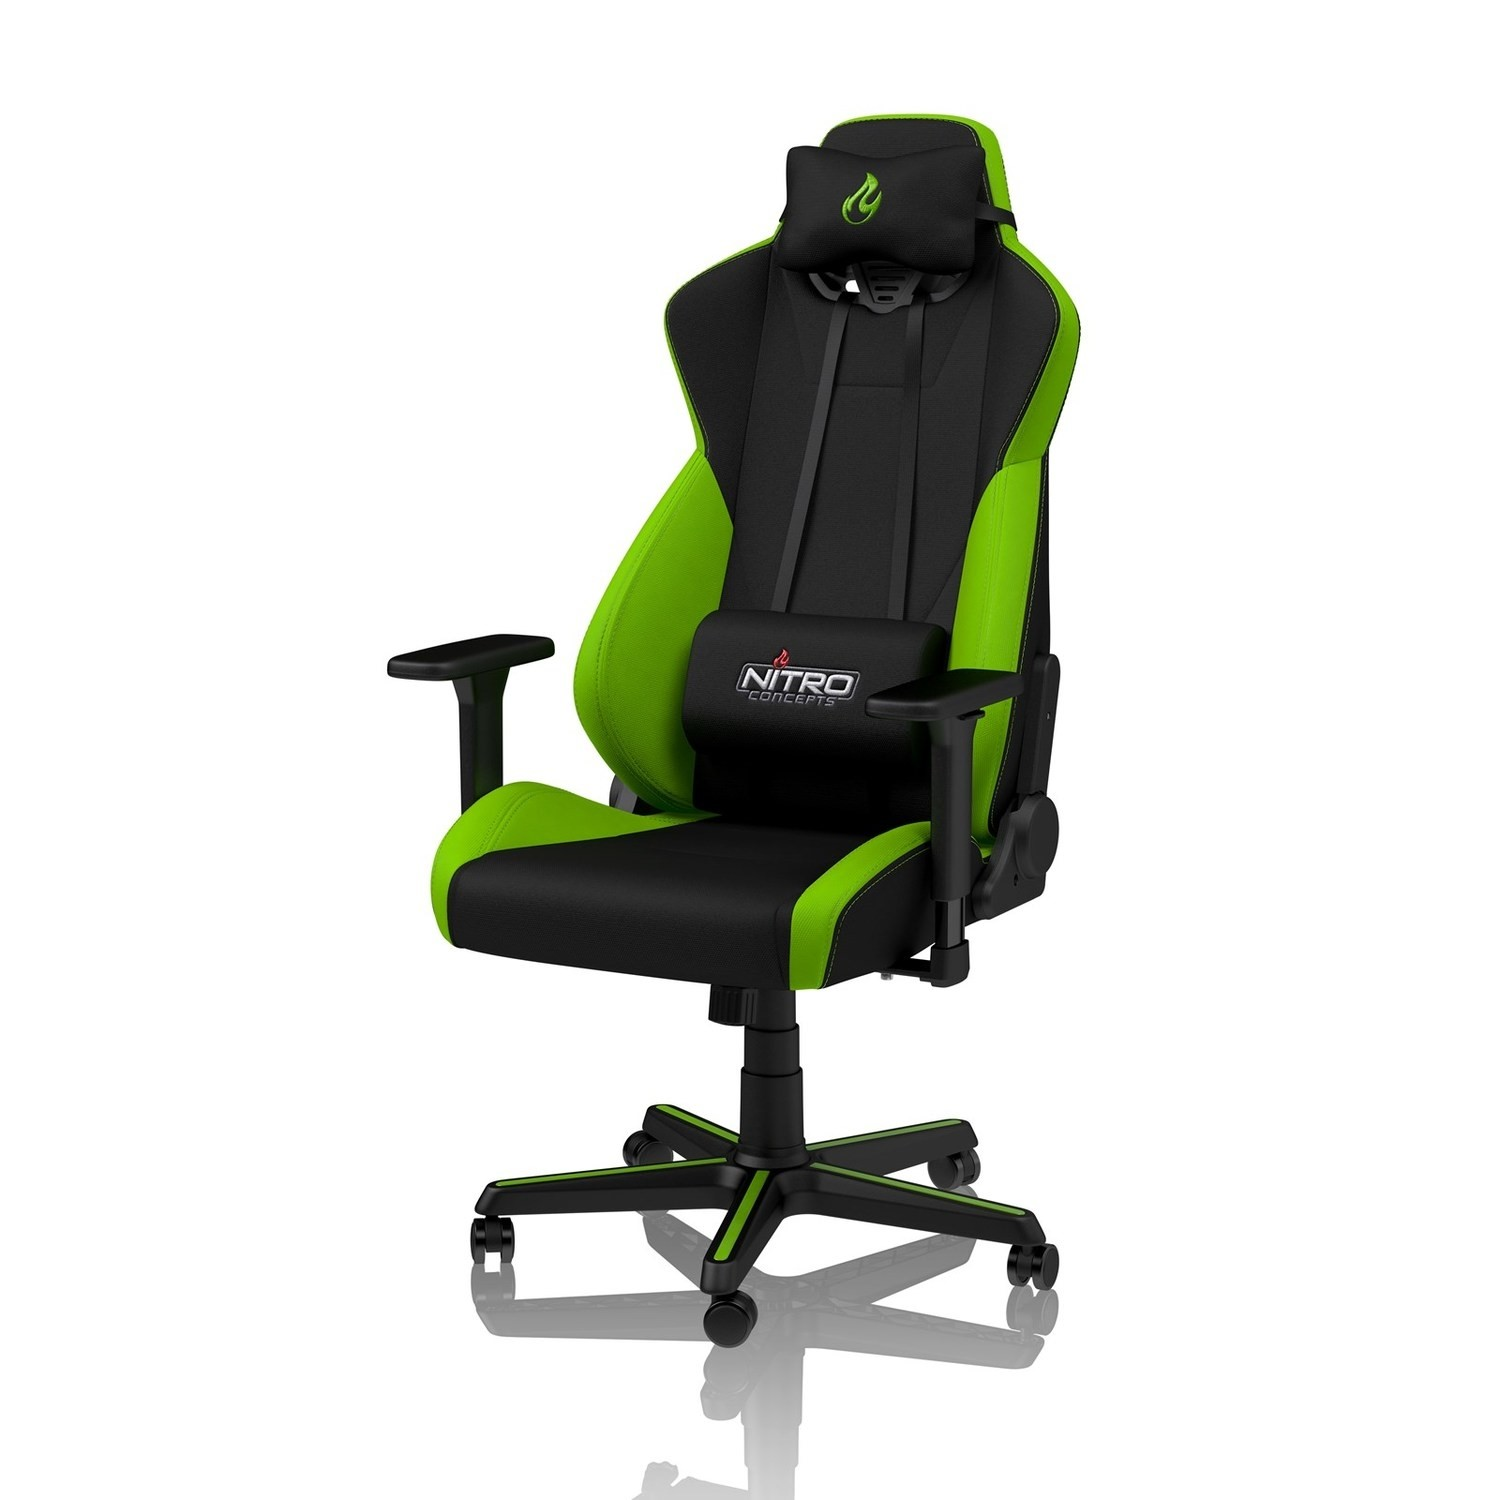 Stupendous Nitro Concepts S300 Fabric Gaming Chair In Atomic Green Ibusinesslaw Wood Chair Design Ideas Ibusinesslaworg